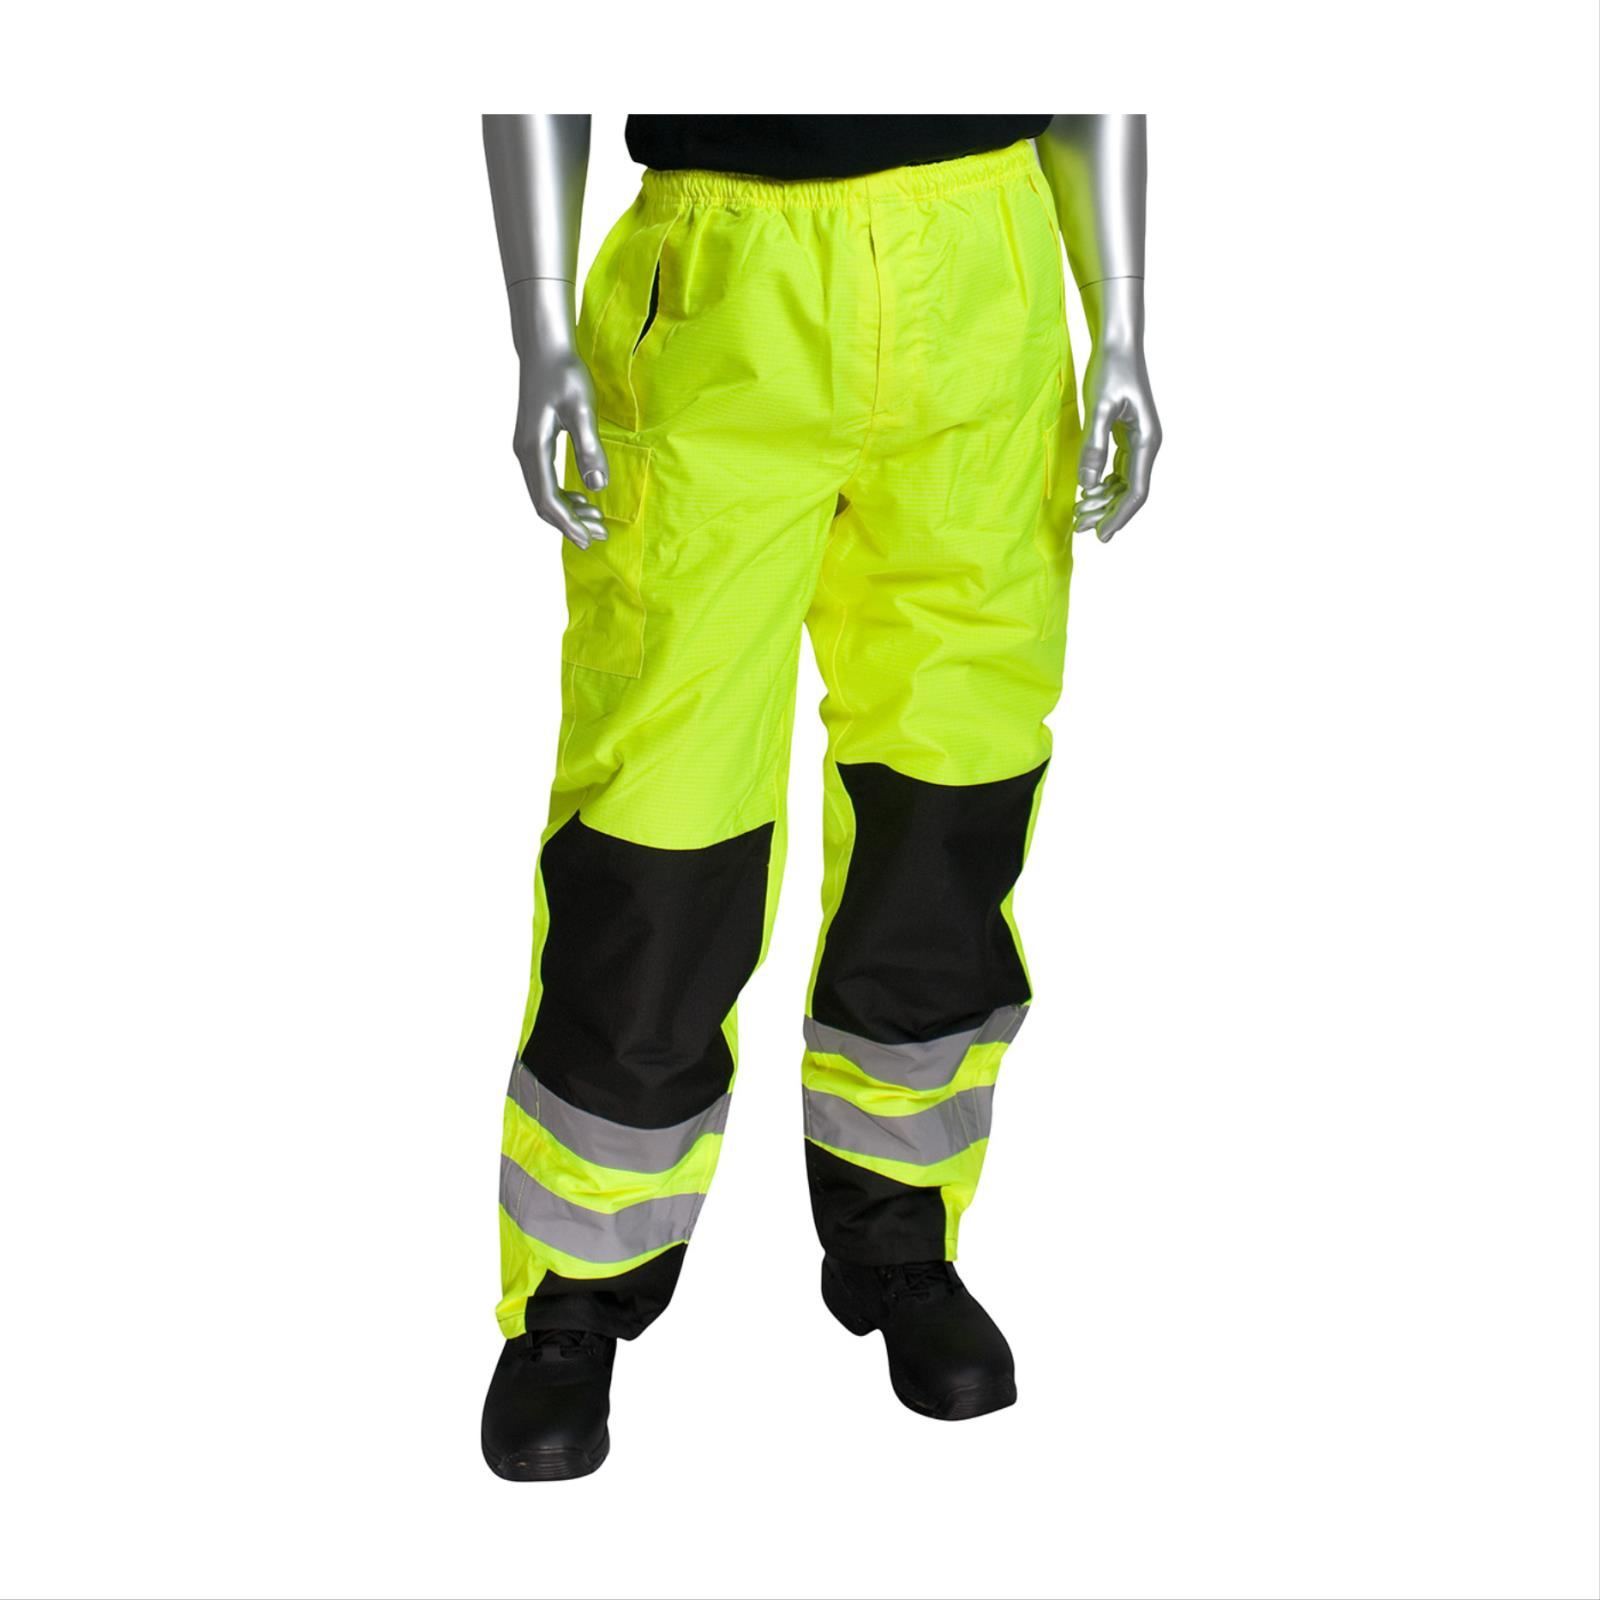 Ripstop Reinforced Overpant, Class E